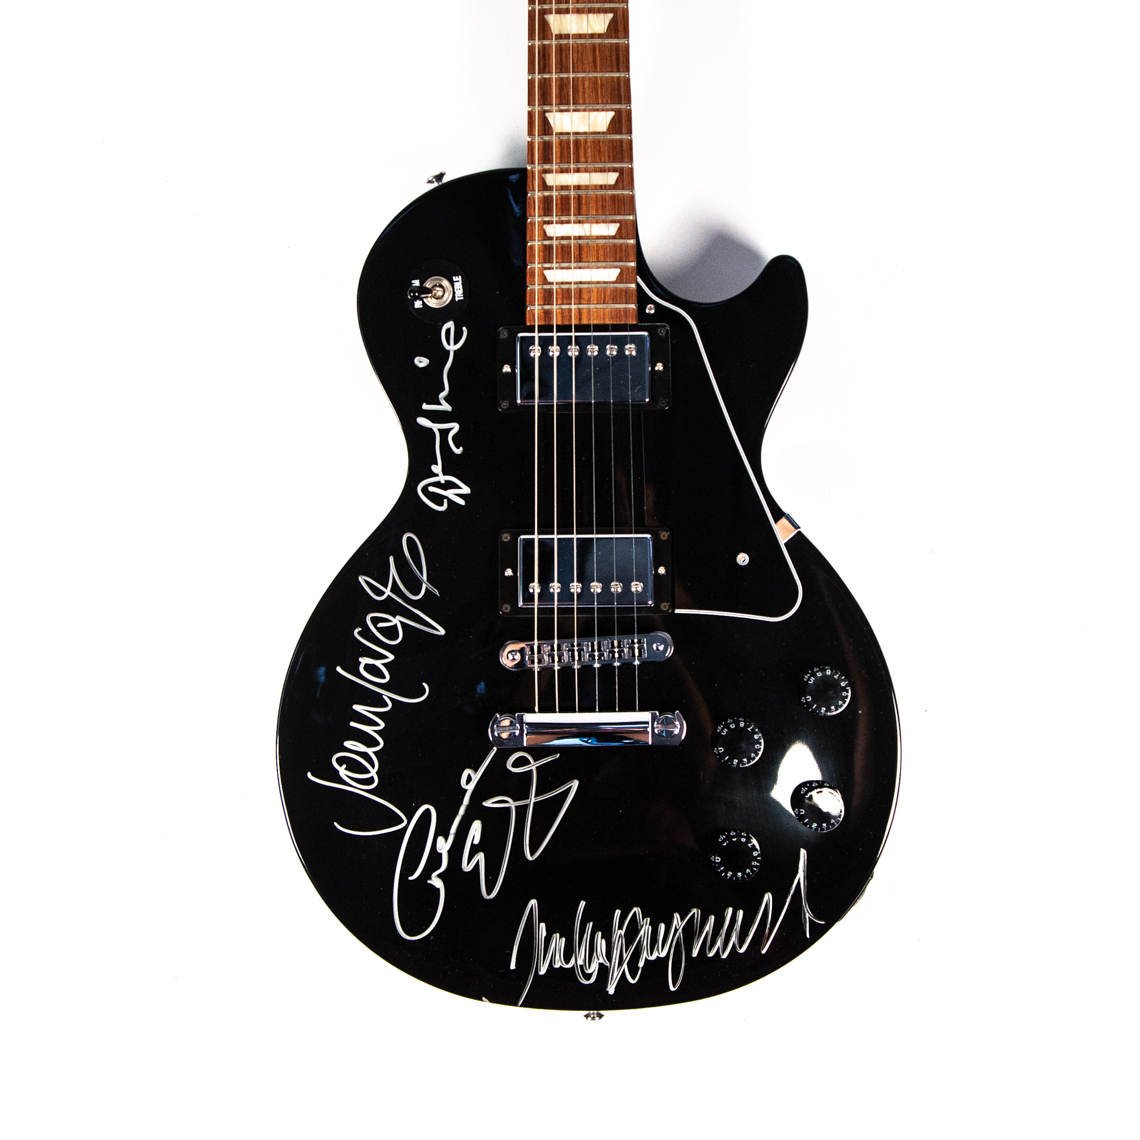 Gibson LP Studio autographed by The Moody Blues